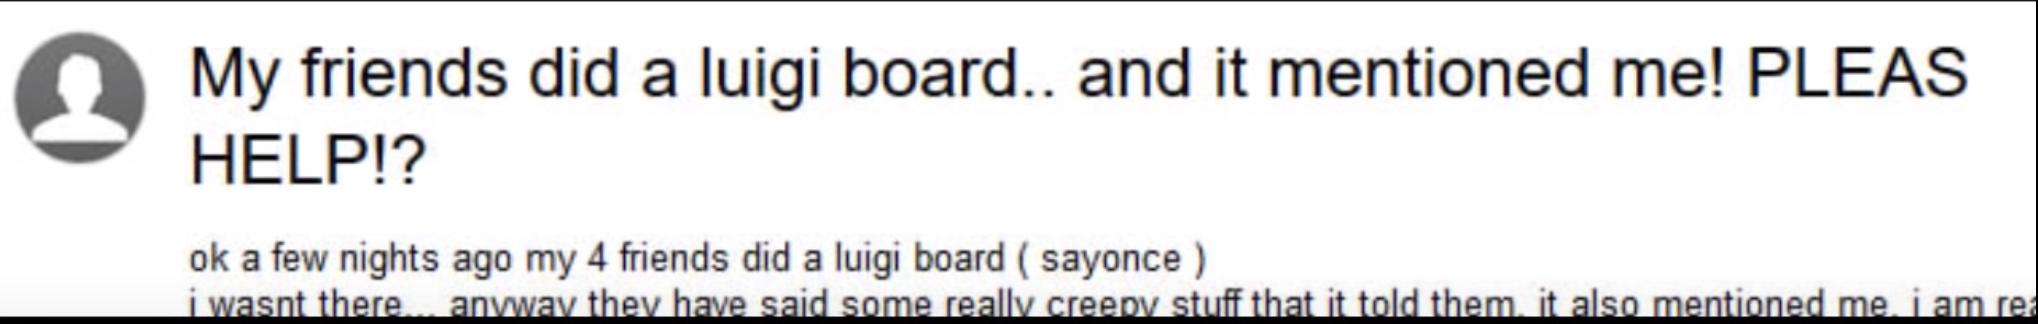 "A post that says, ""My friends did a luigi board and it mentioned me please help"""